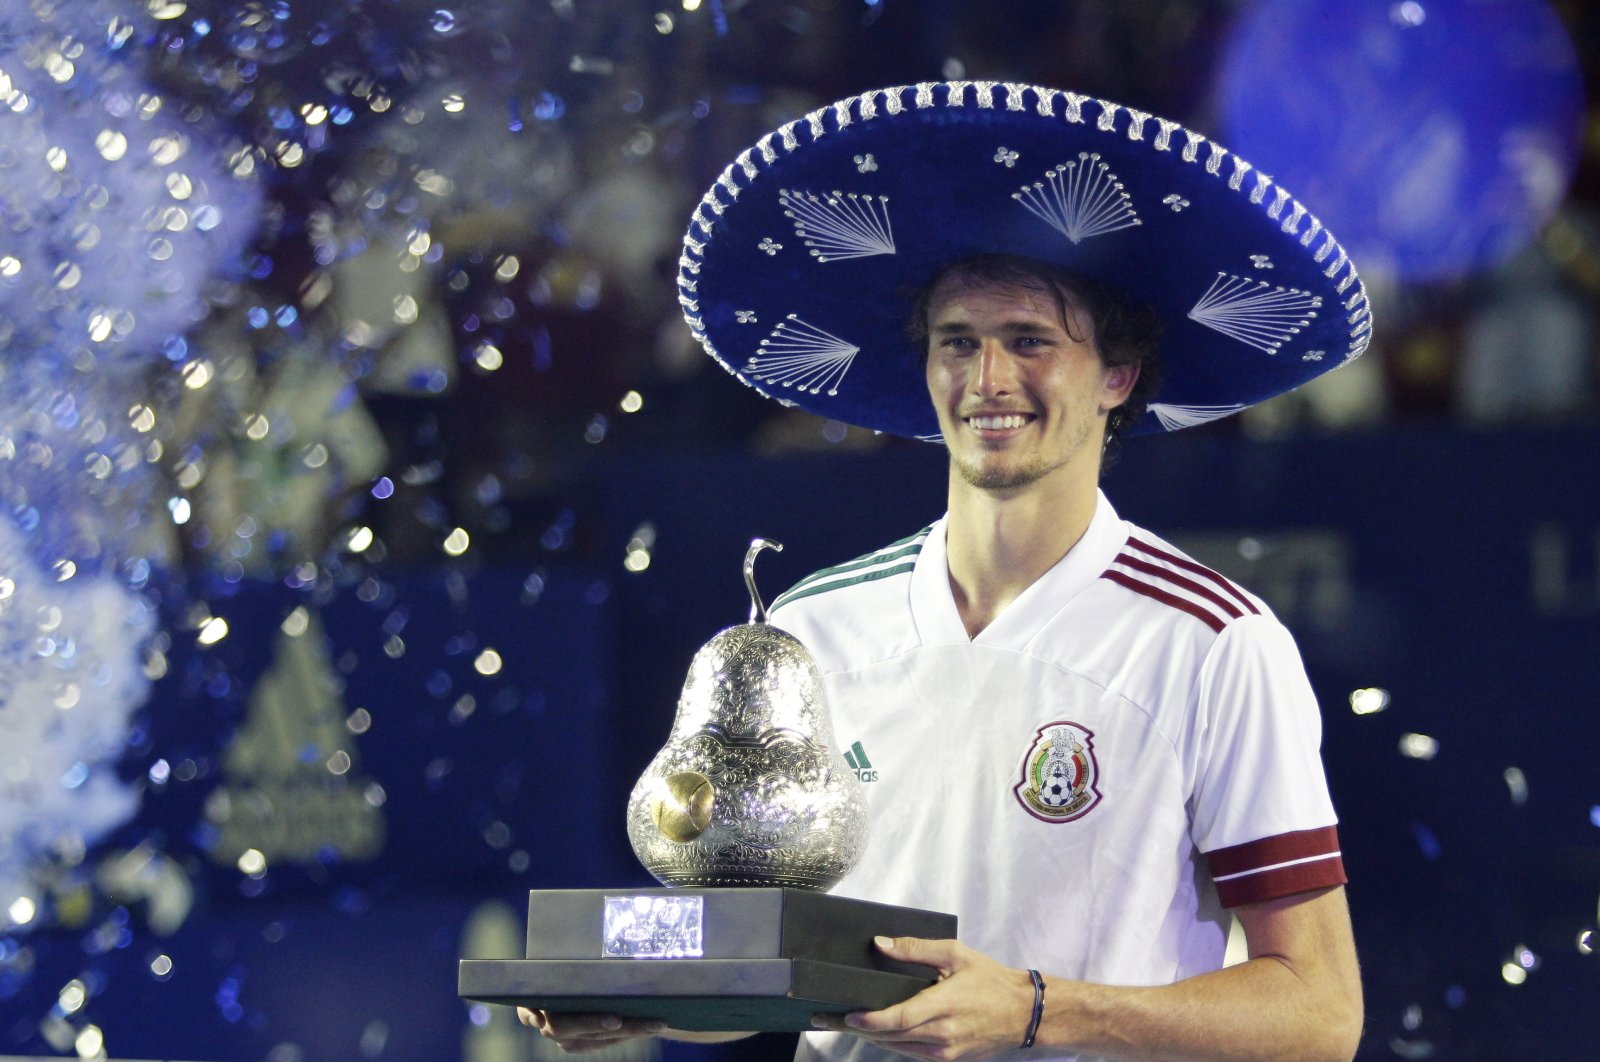 Germany's Alexander Zverev celebrates with the trophy after winning the Mexican Open at the Fairmont Acapulco Princess, Acapulco, Mexico, March 20, 2021. (Reuters Photo)